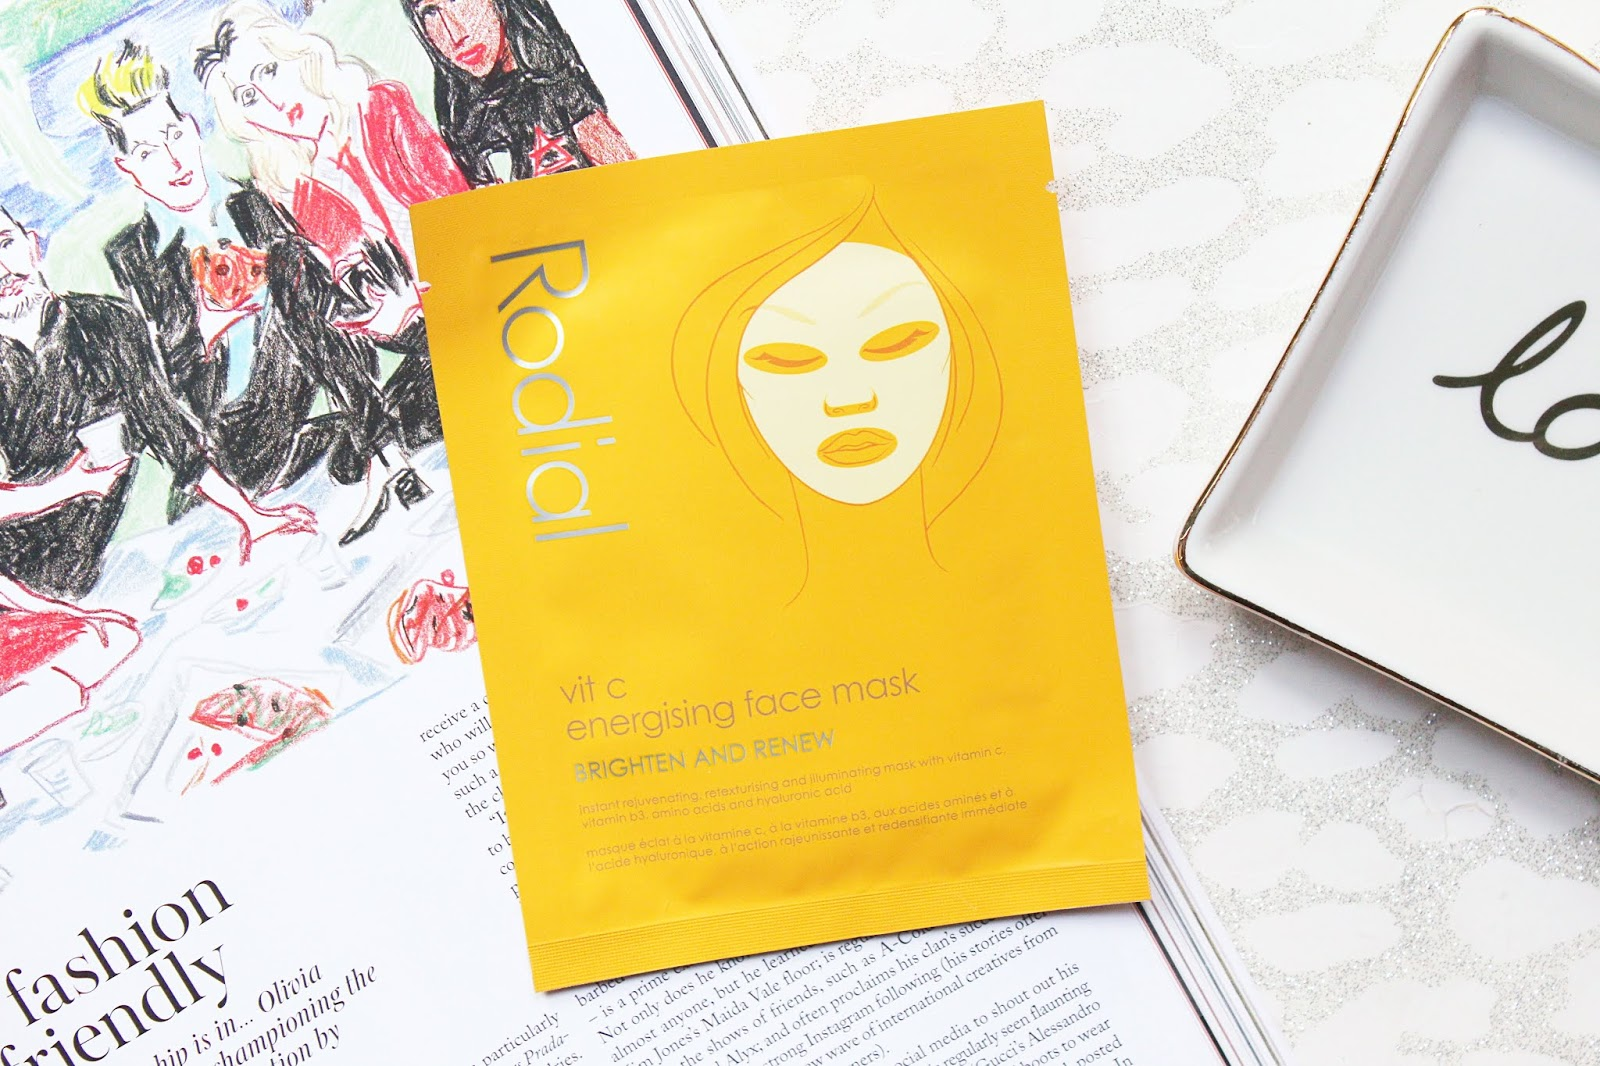 Rodial Vit C Energising Face Mask Review